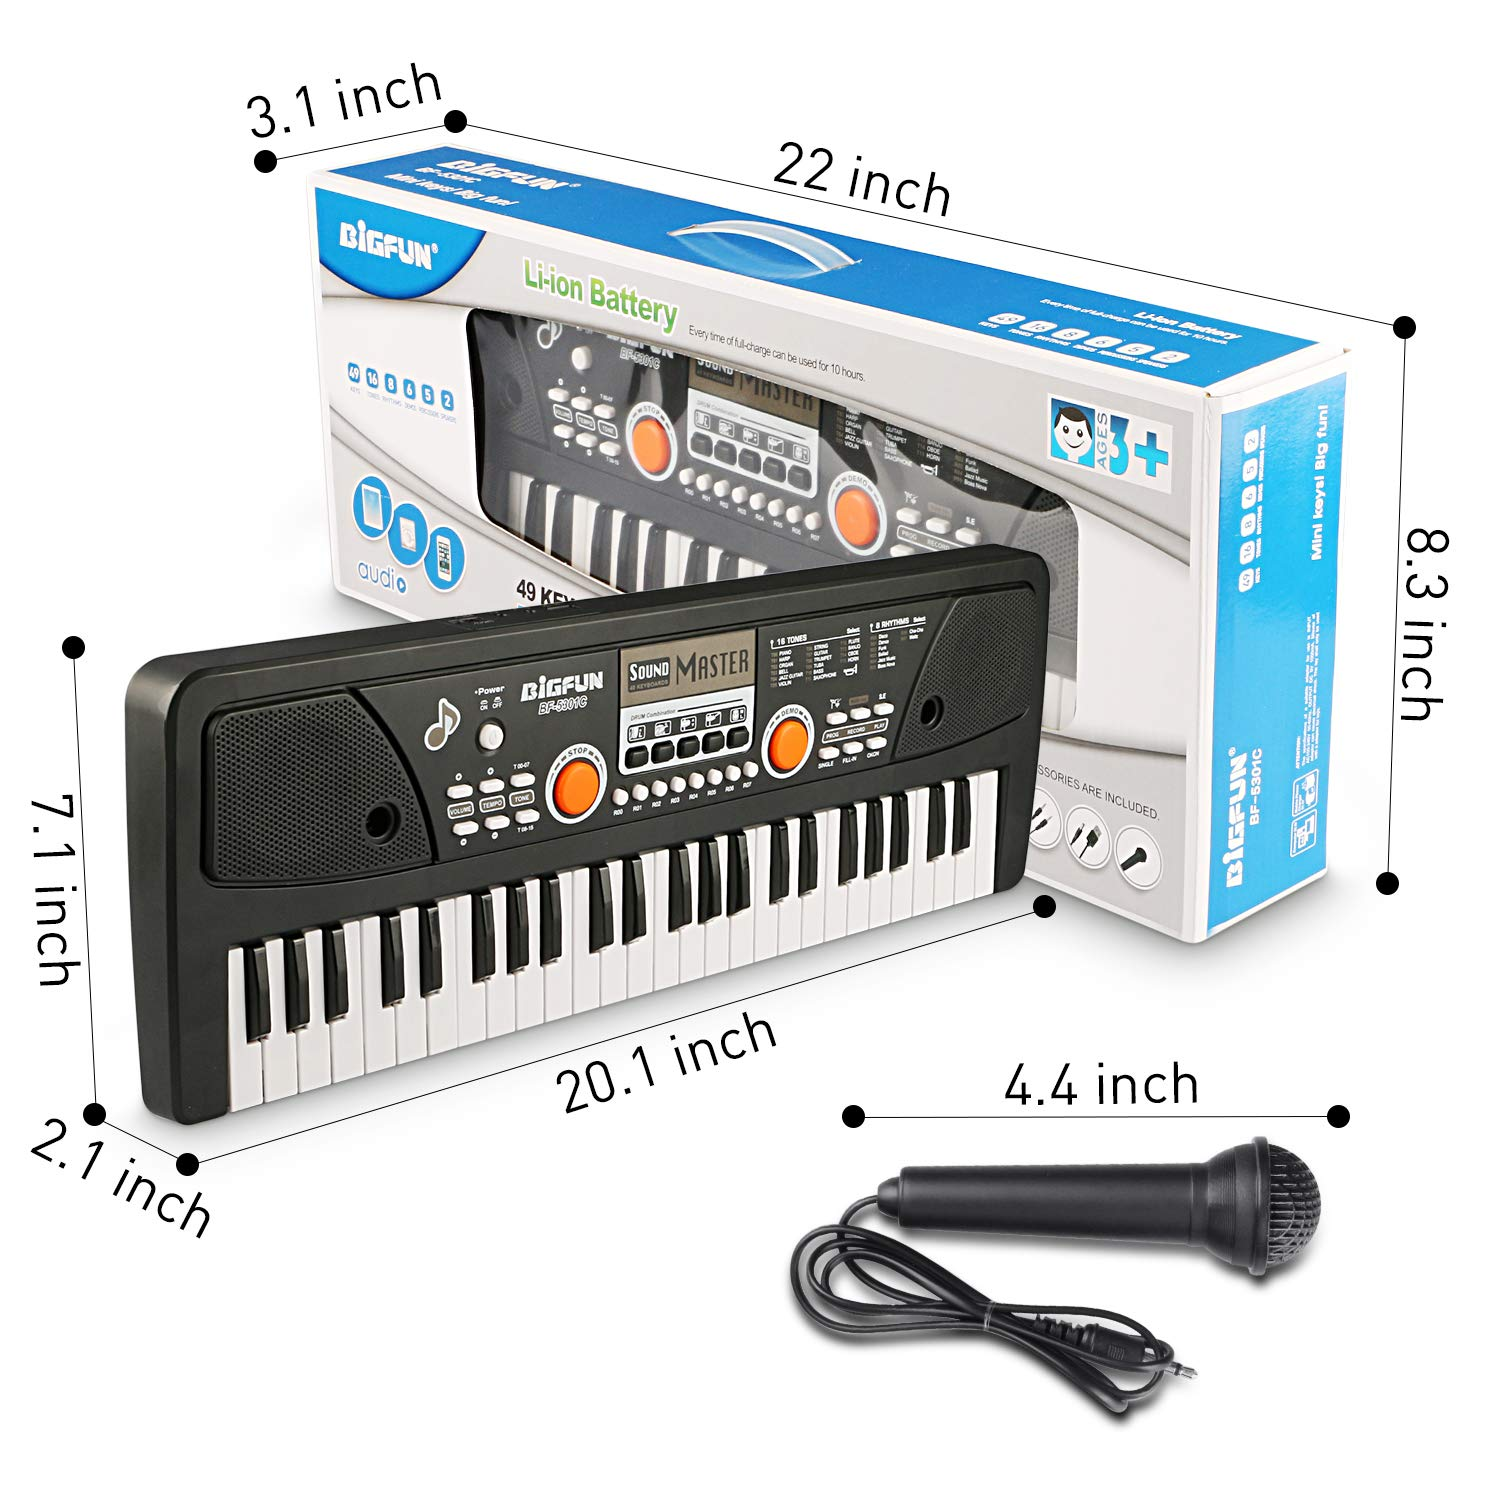 Kids Piano Keyboard 49 Keys- Multi-function Portable Piano Keyboard Electronic Organ with Charging function for Kids and Beginners Chargeable by Tencoz (Image #8)